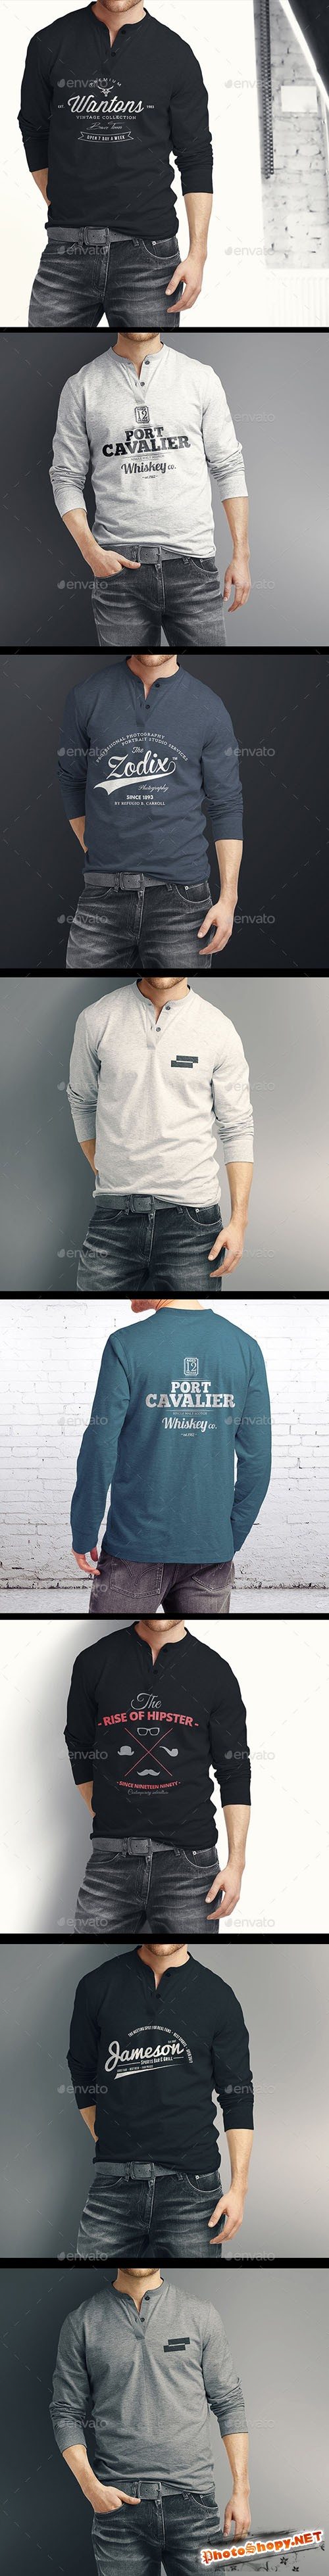 Man Longsleeve Shirt Mock-up - Graphicriver 9610861